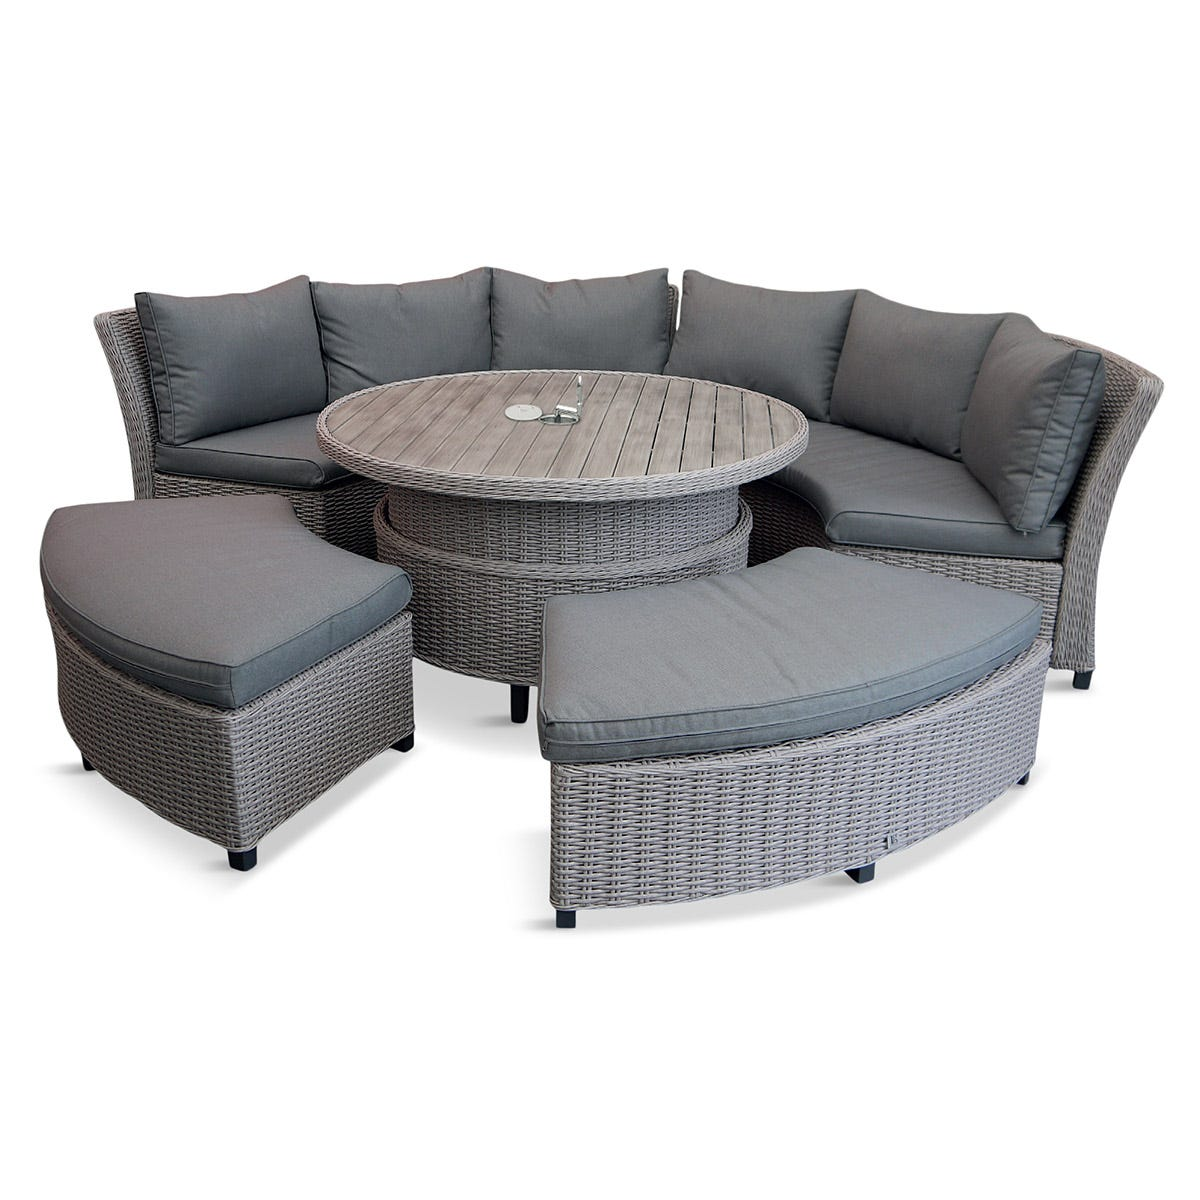 LG Outdoor Oslo Curved Dining Modular Set with Crank Adjustable Table